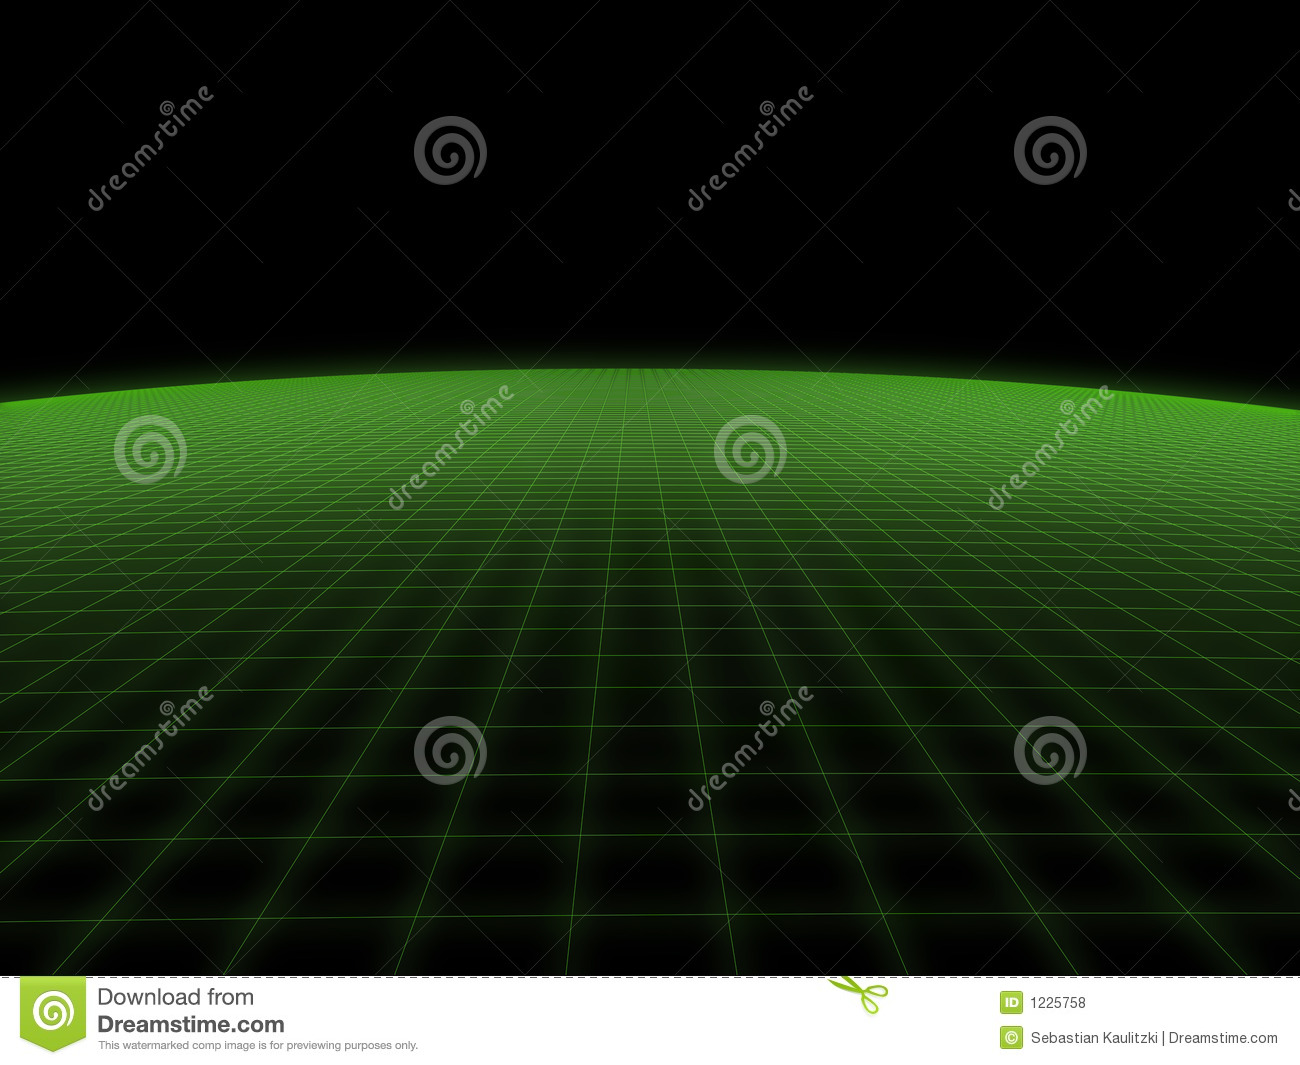 3d space royalty free stock photos image 1225758 for Space in 3d